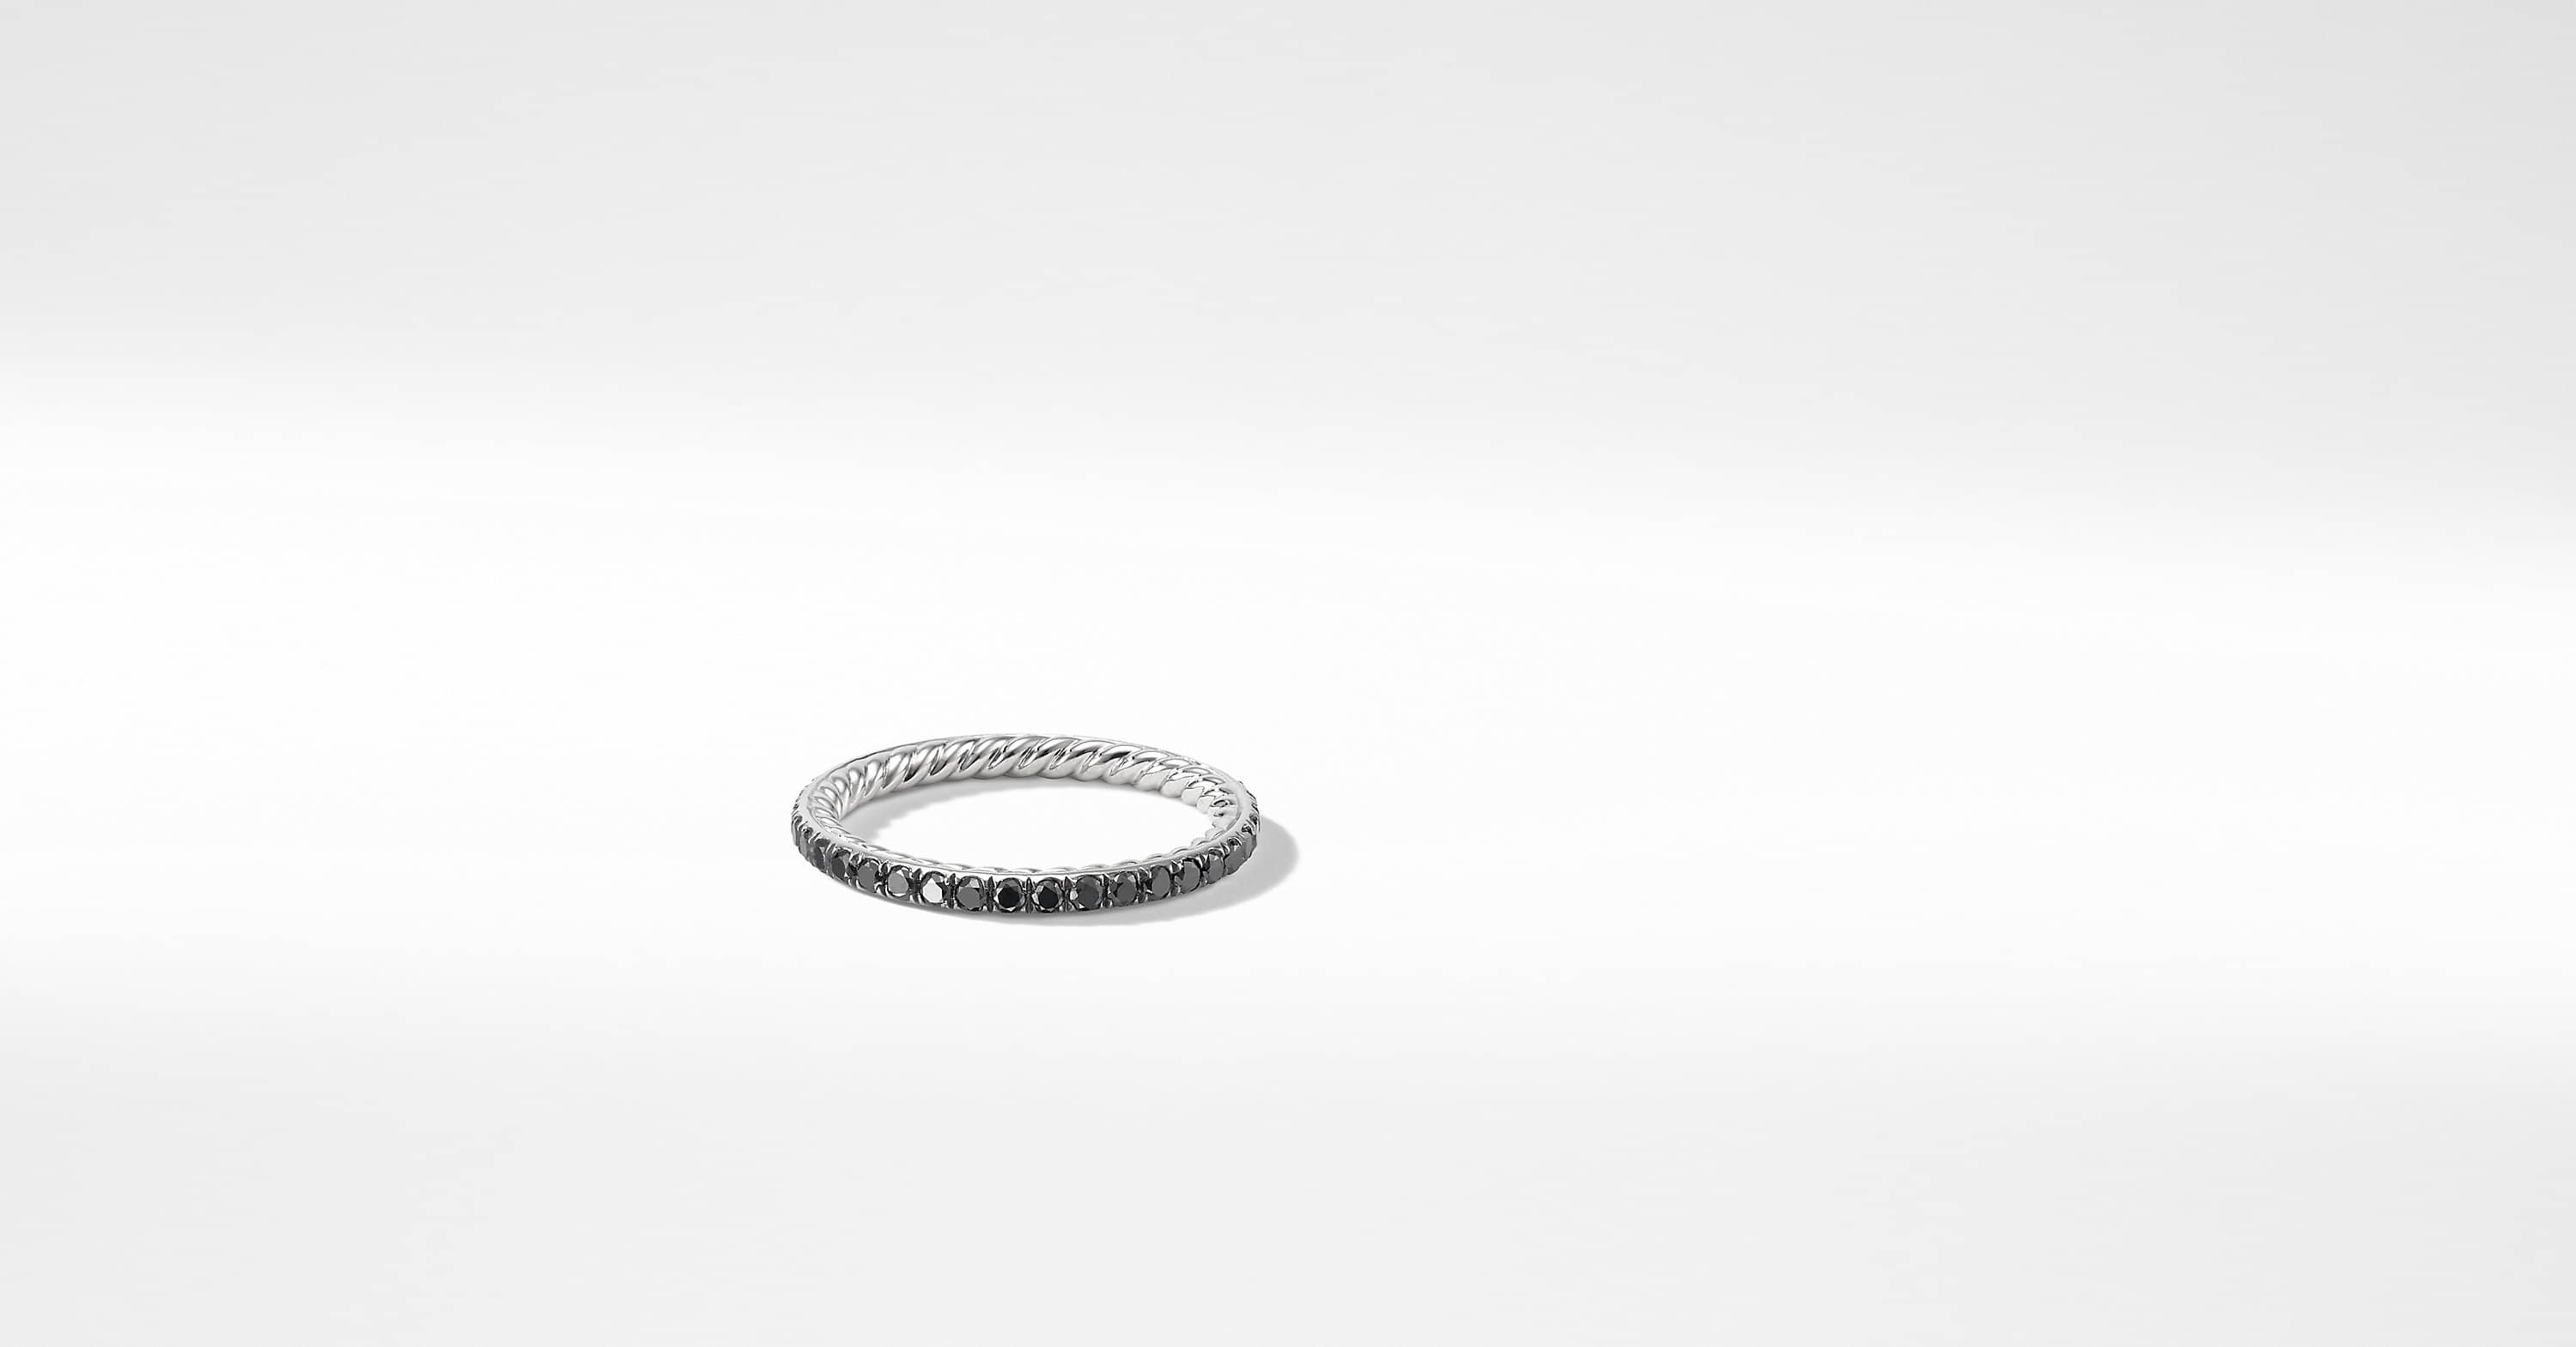 DY Eden Single Row Wedding Band with Diamonds in Platinum, 1.85mm